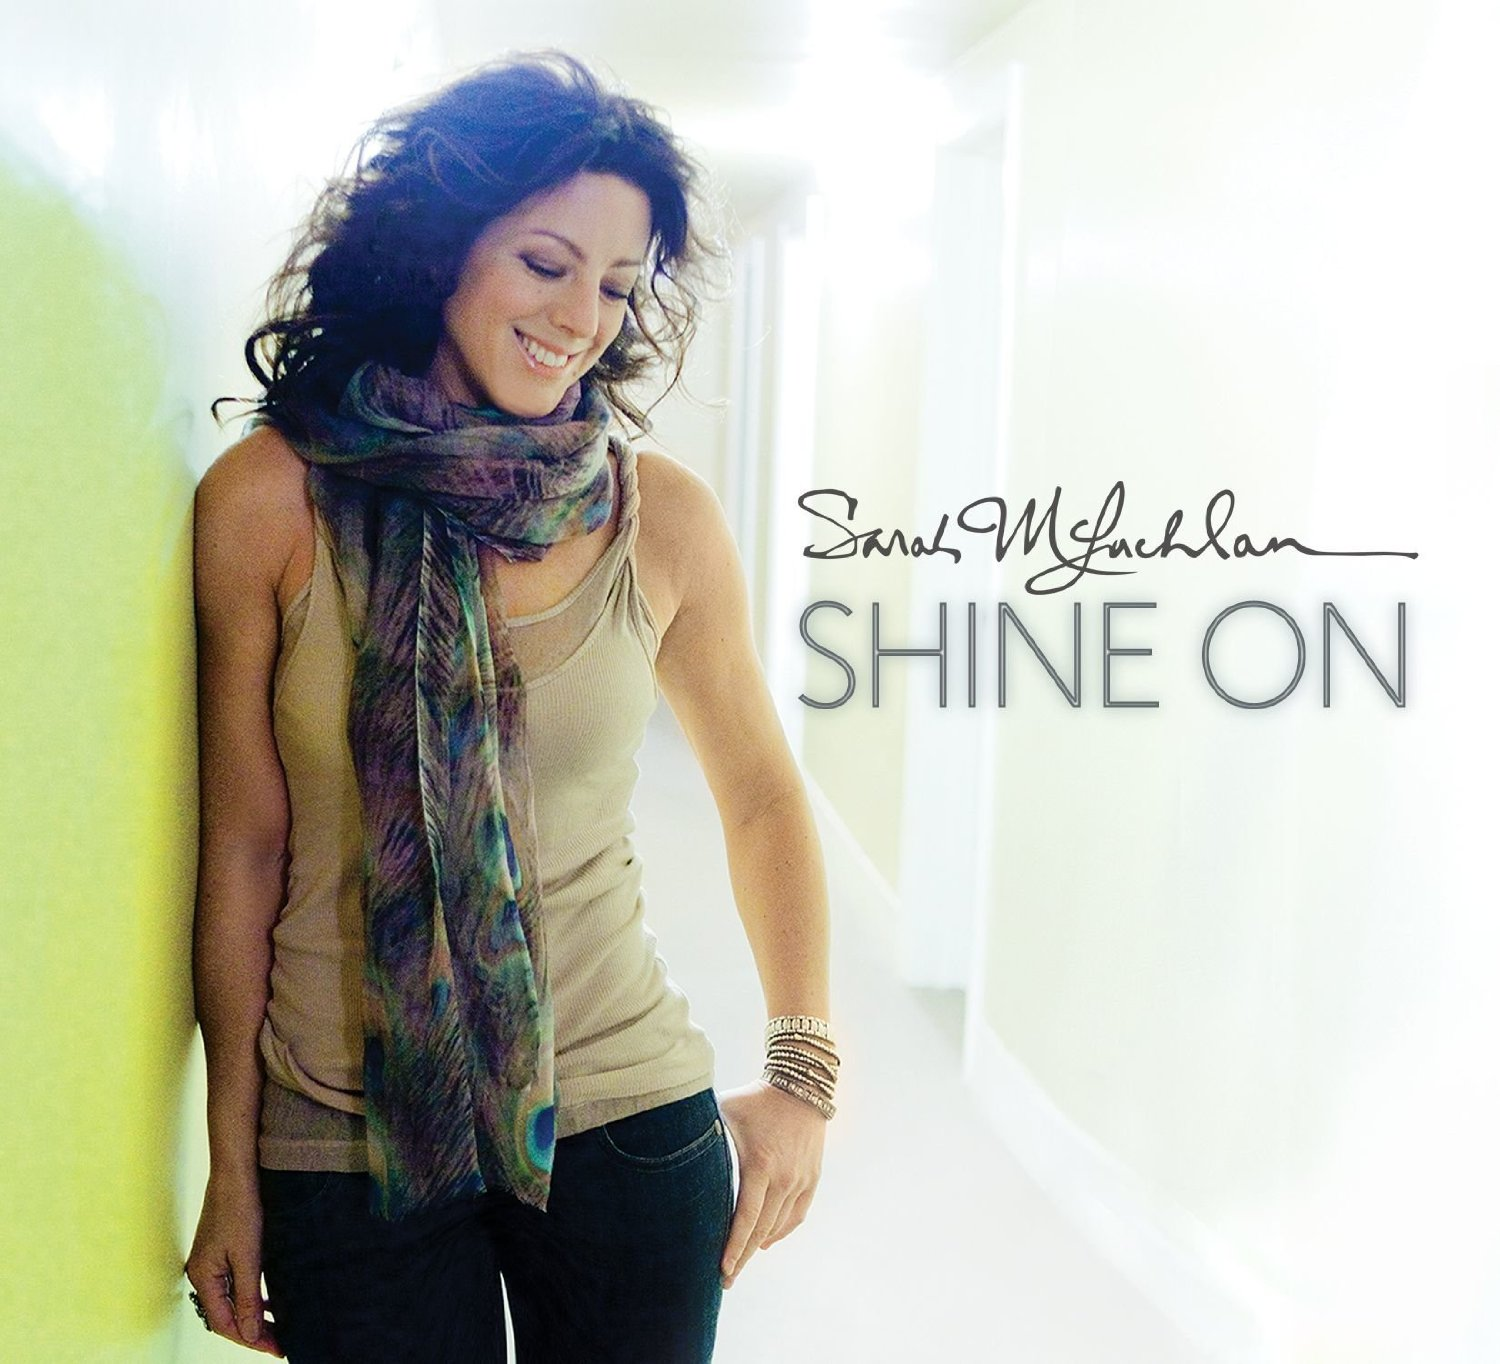 sarahmclachlan-shine-on